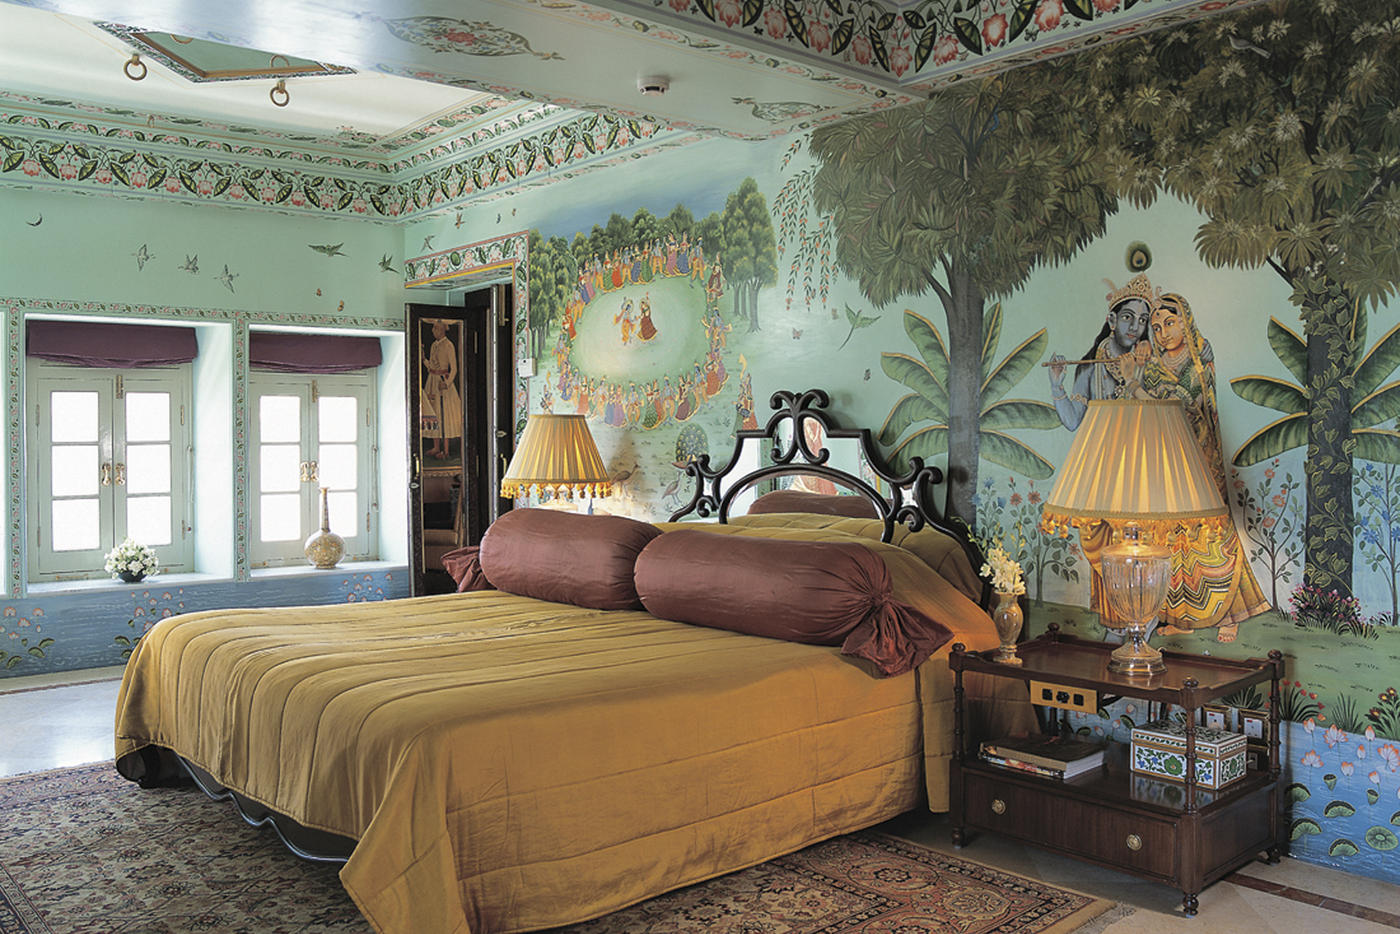 Suite, Taj Lake Palace